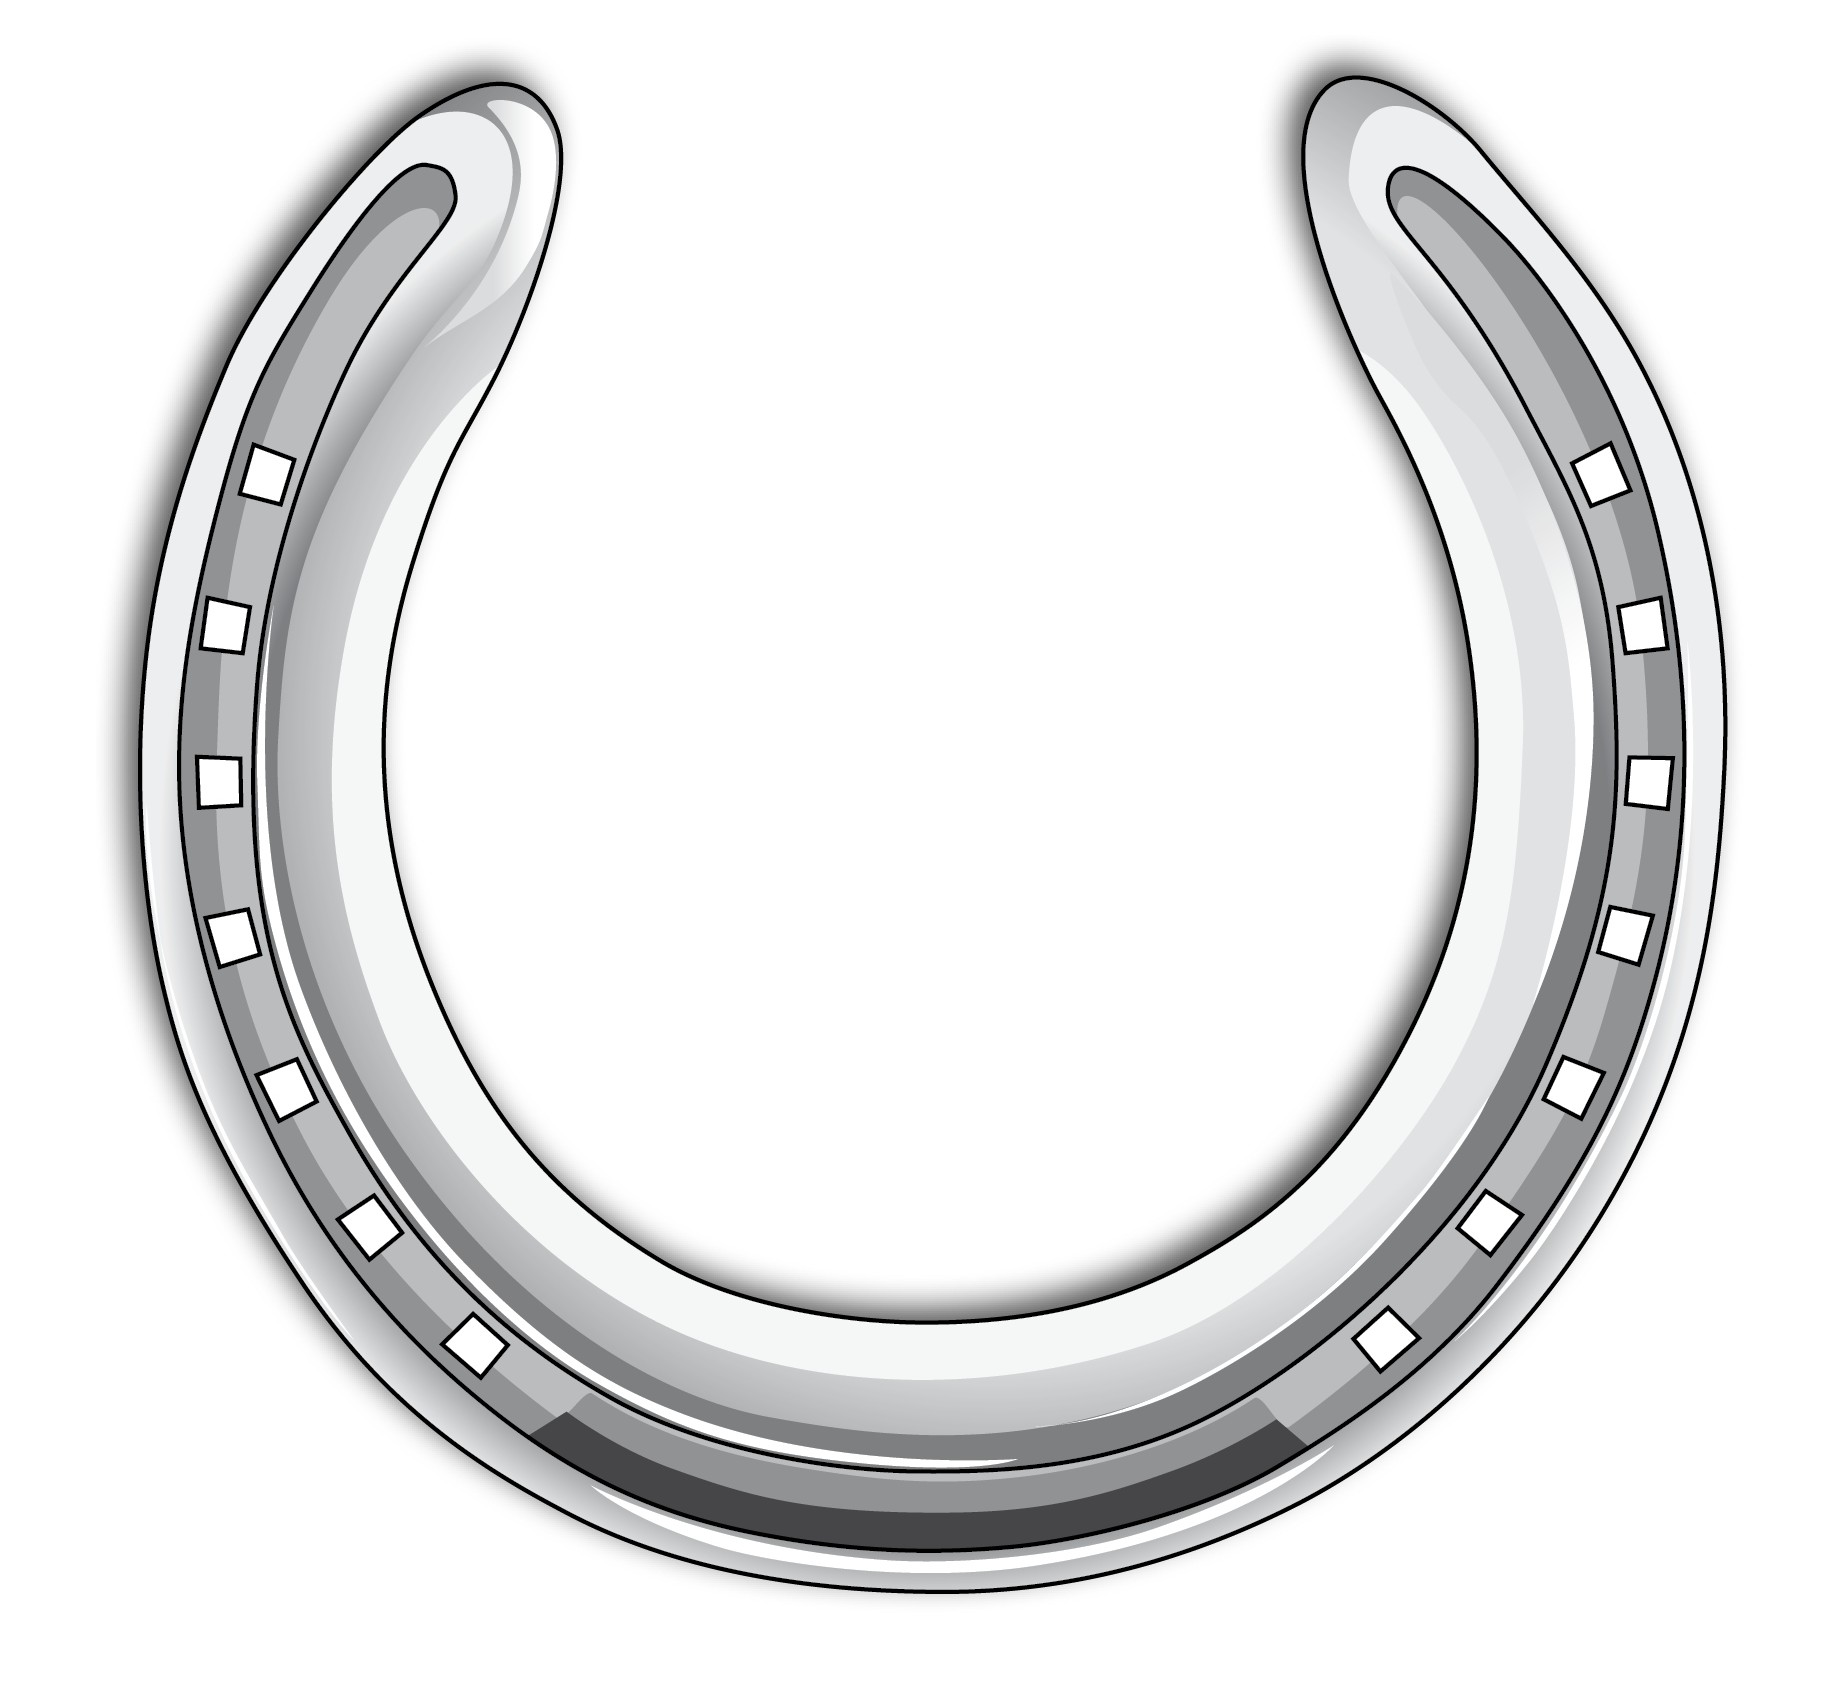 will using aluminium shoes improve my horses movement horseshoe clip art images free horseshoe clip art with bows